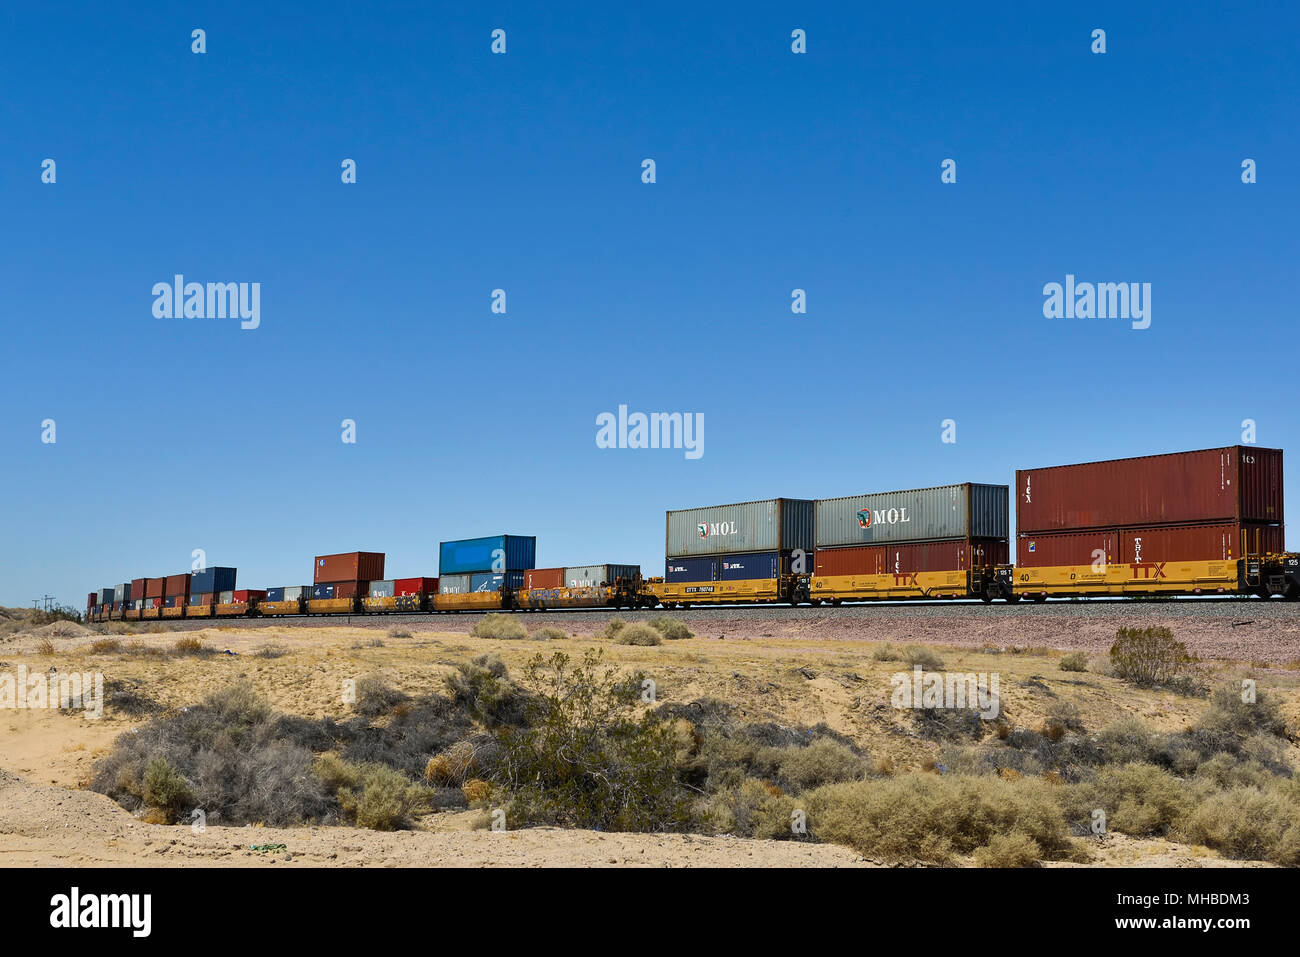 Container Boxes on a freight train in Barstow, California - Stock Image